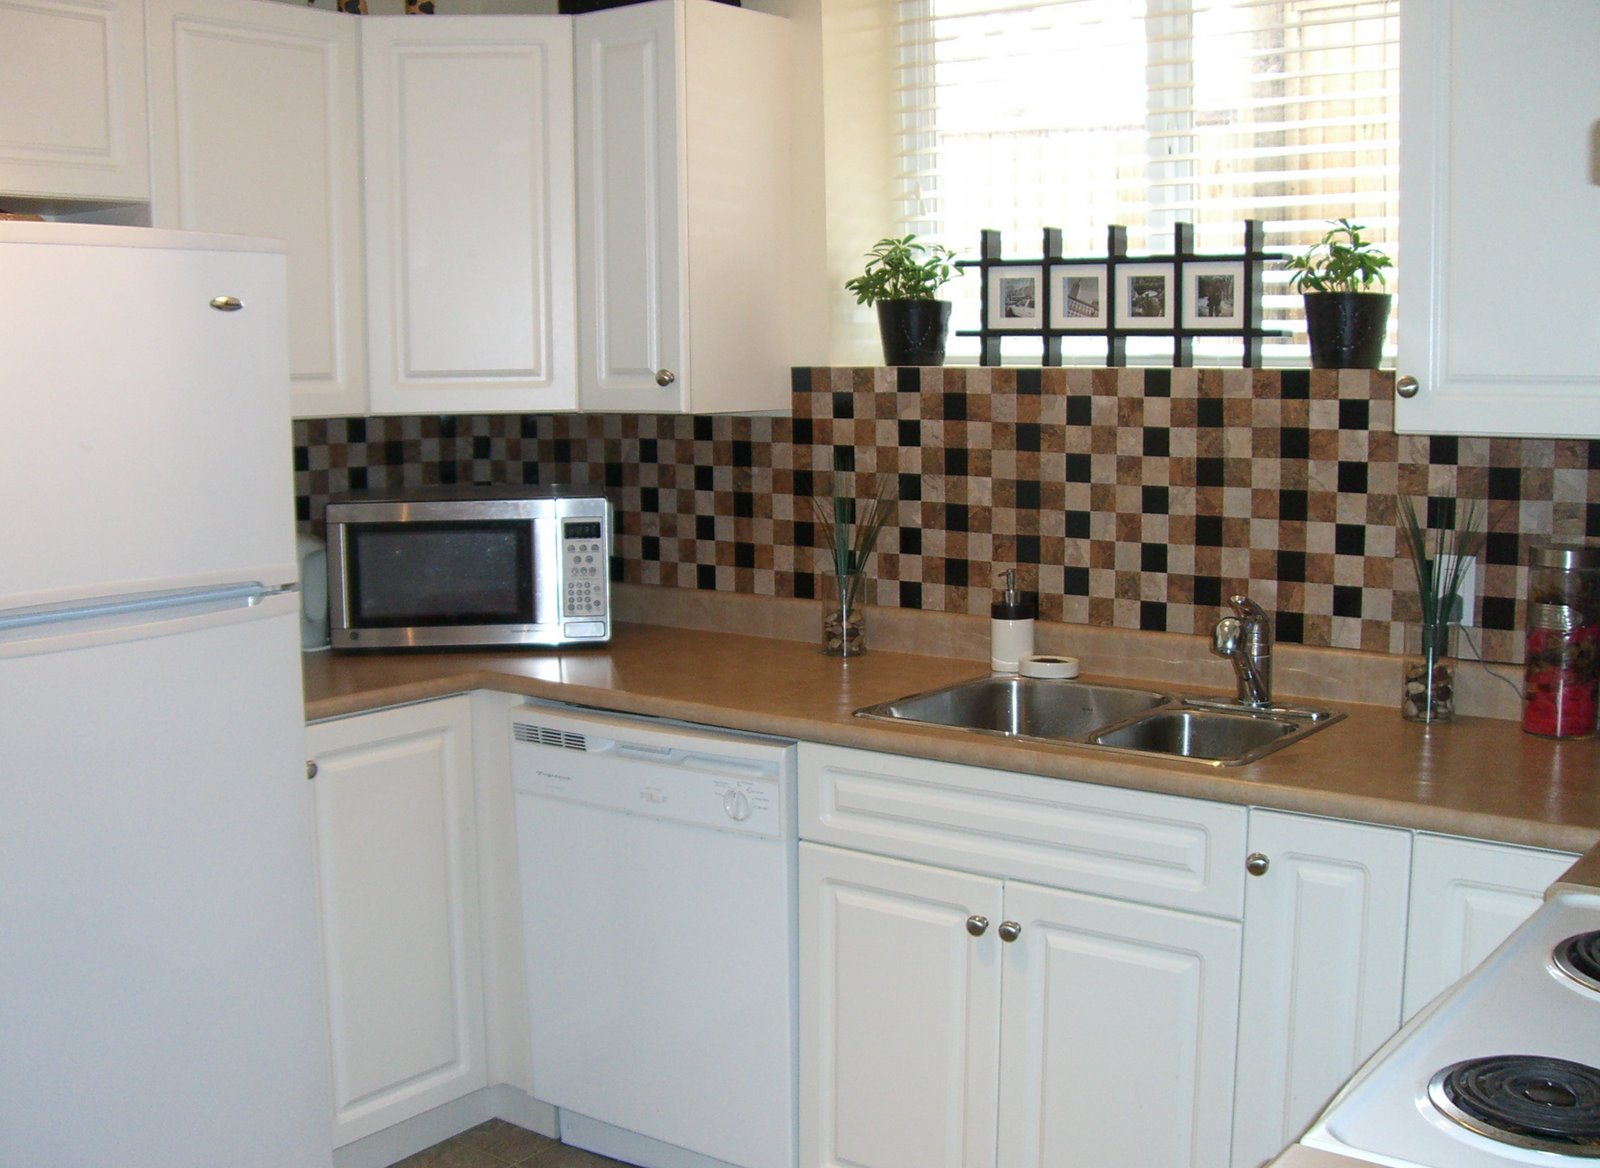 Kitchen Backsplash Tiles with Vinyl